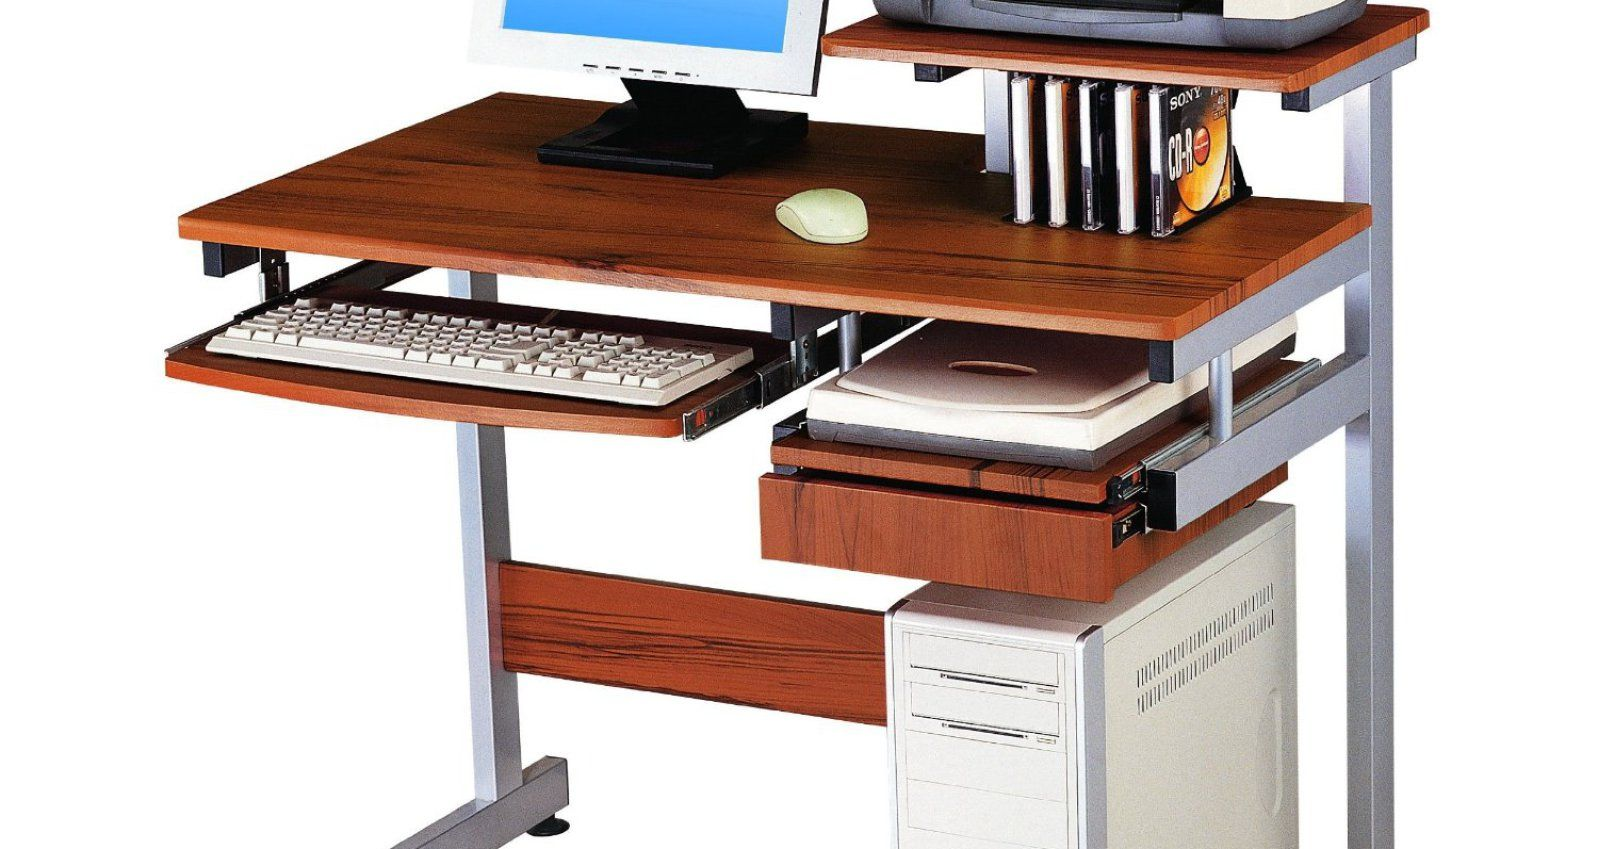 30 Small Desk Office Humidifier Modern Furniture Design Check More At Http